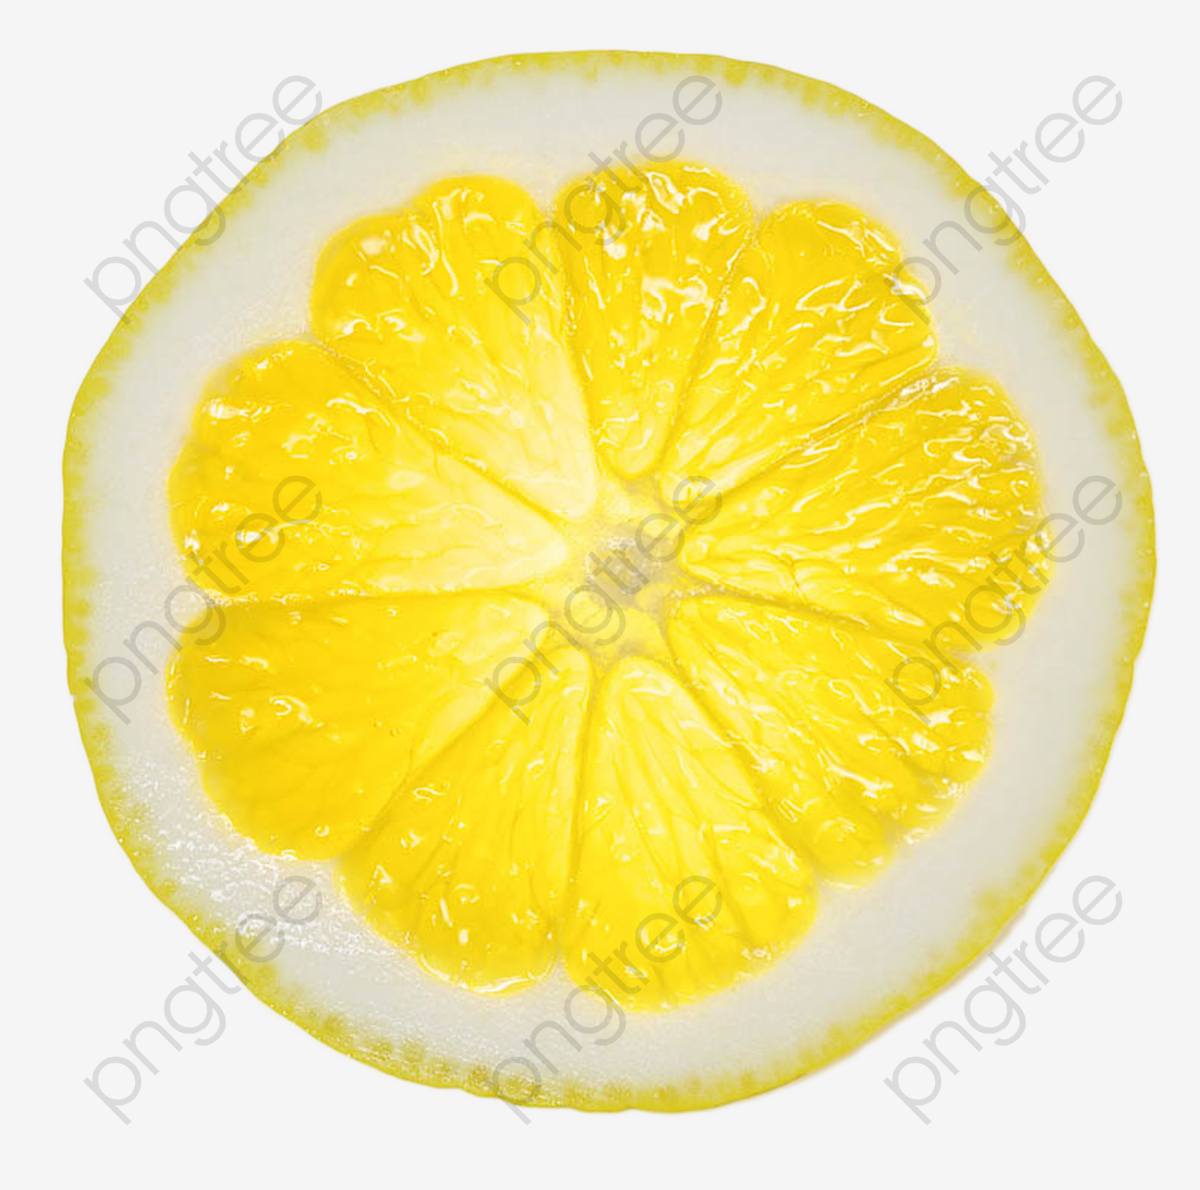 Lemon Slices, Lemon Clipart, Lemon PNG Transparent Image and.